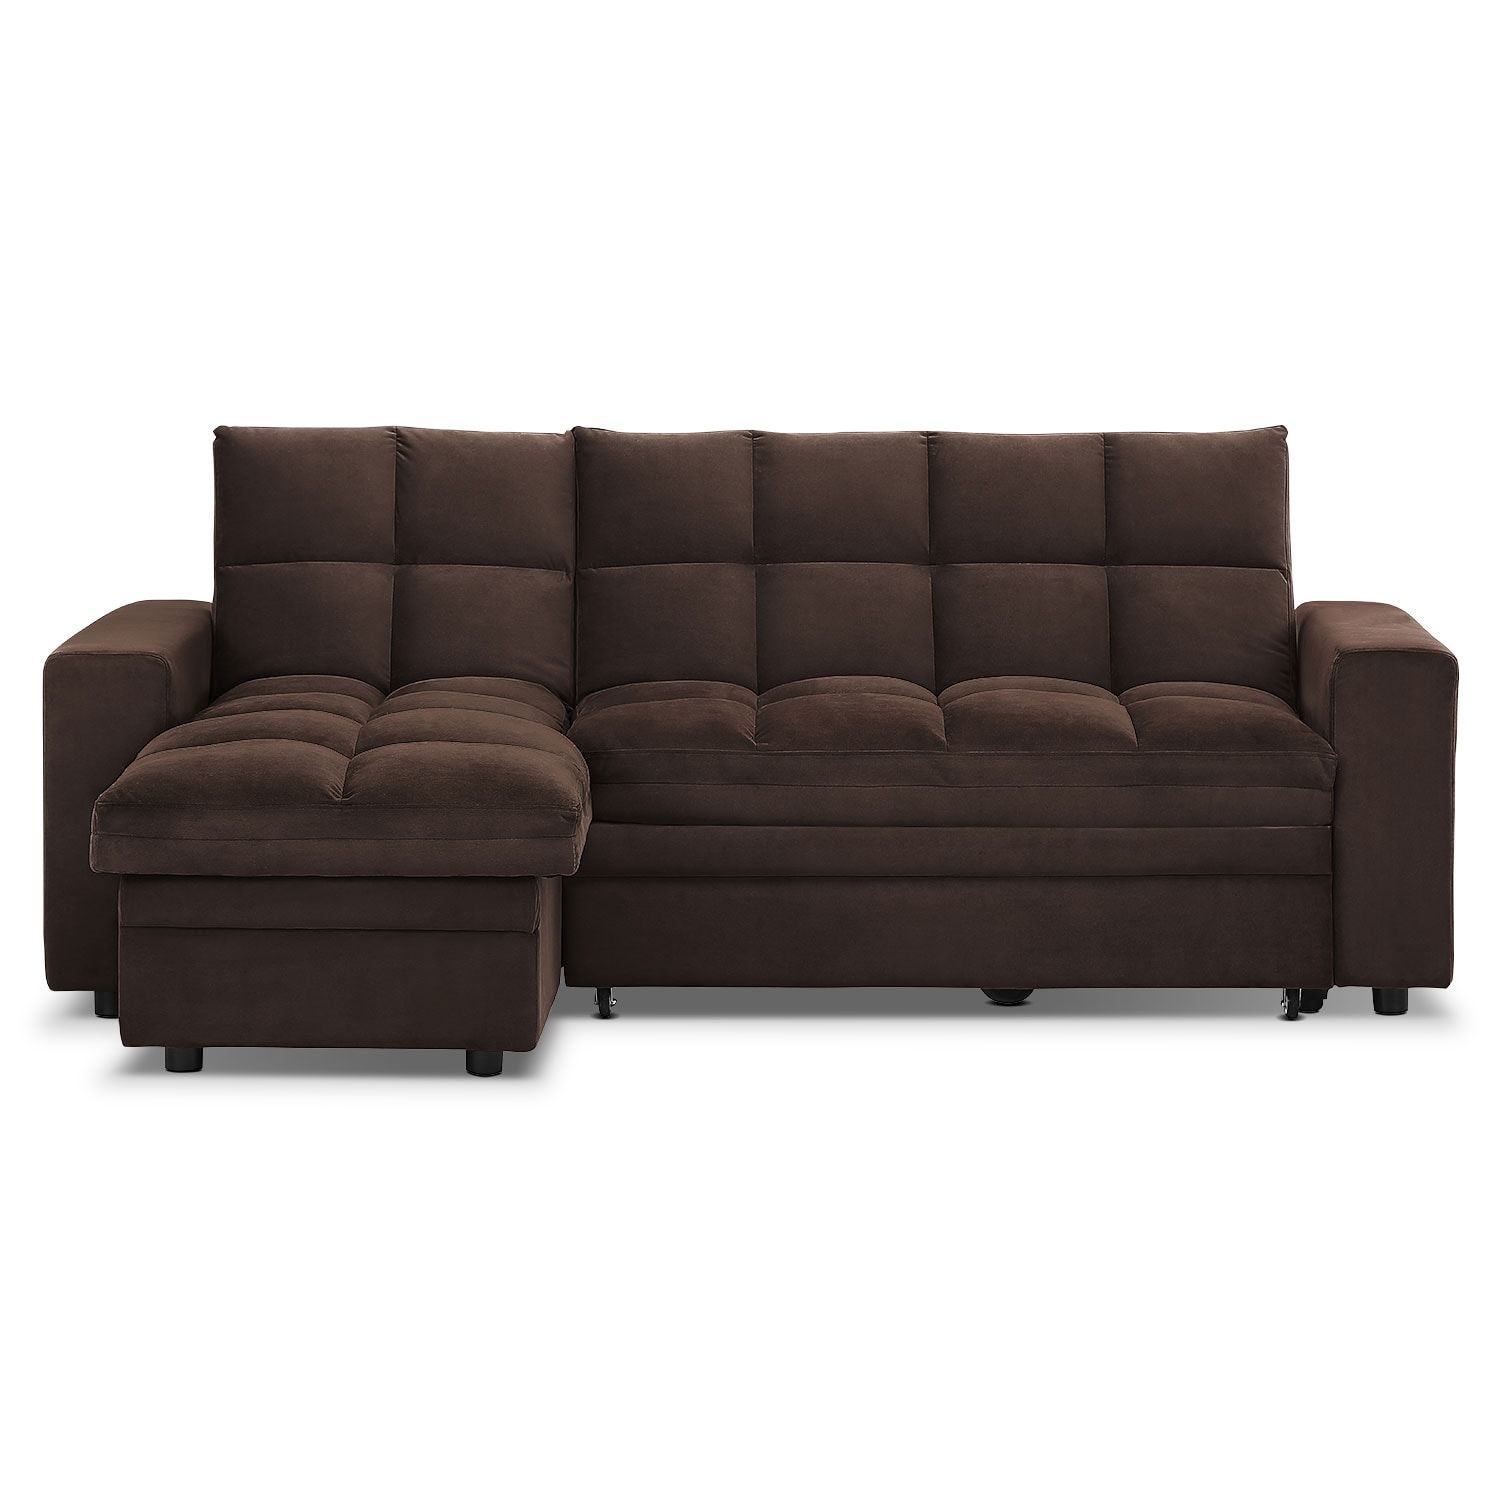 Metro chaise sofa bed with storage brown value city for Sofa bed value city furniture